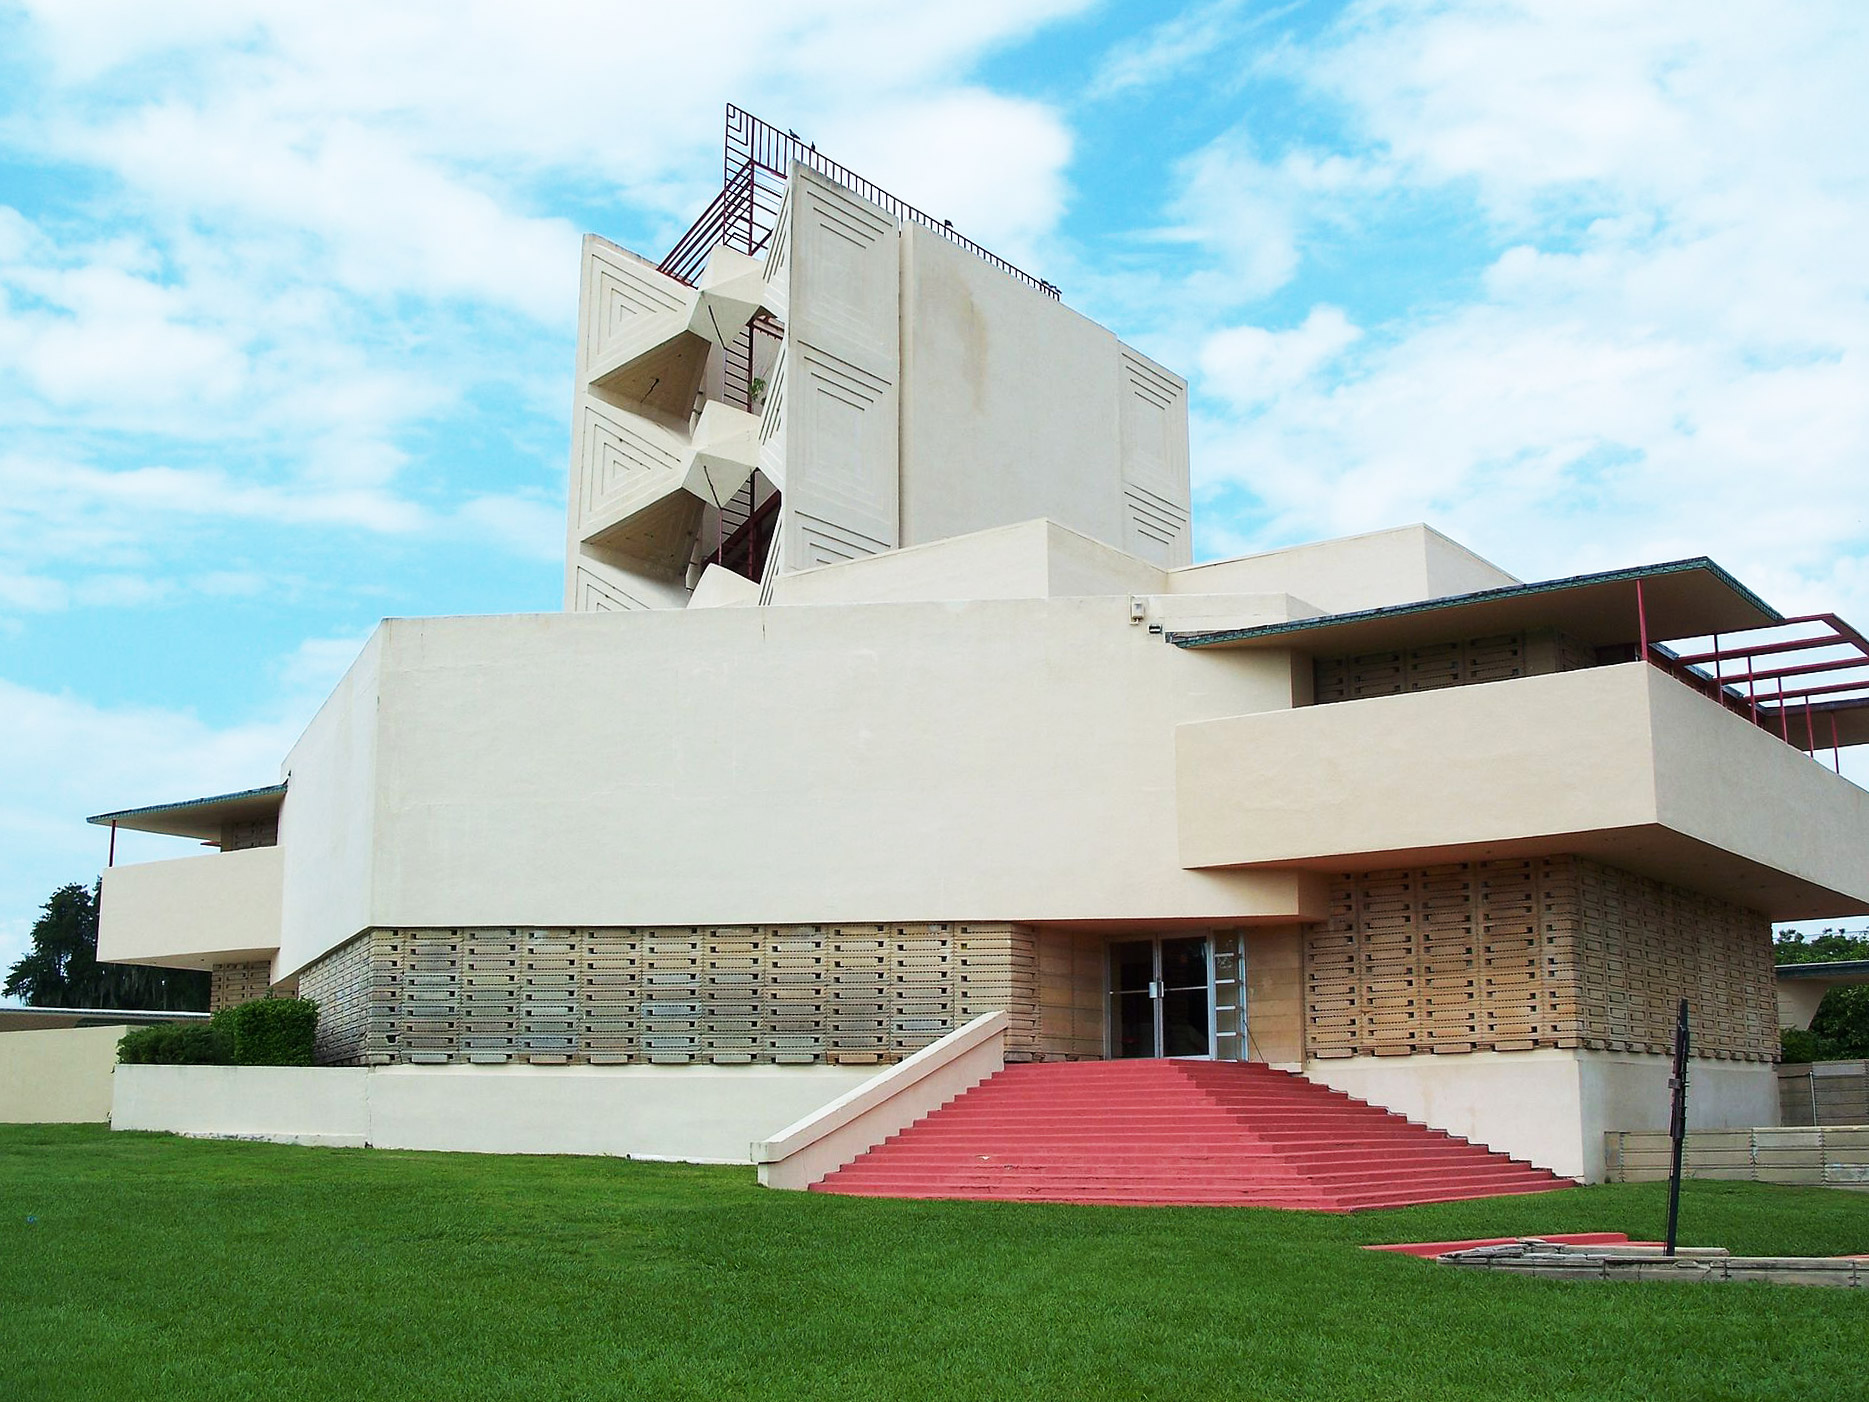 3D Printing Rescues Frank Lloyd Wright's Annie Pfeiffer Chapel